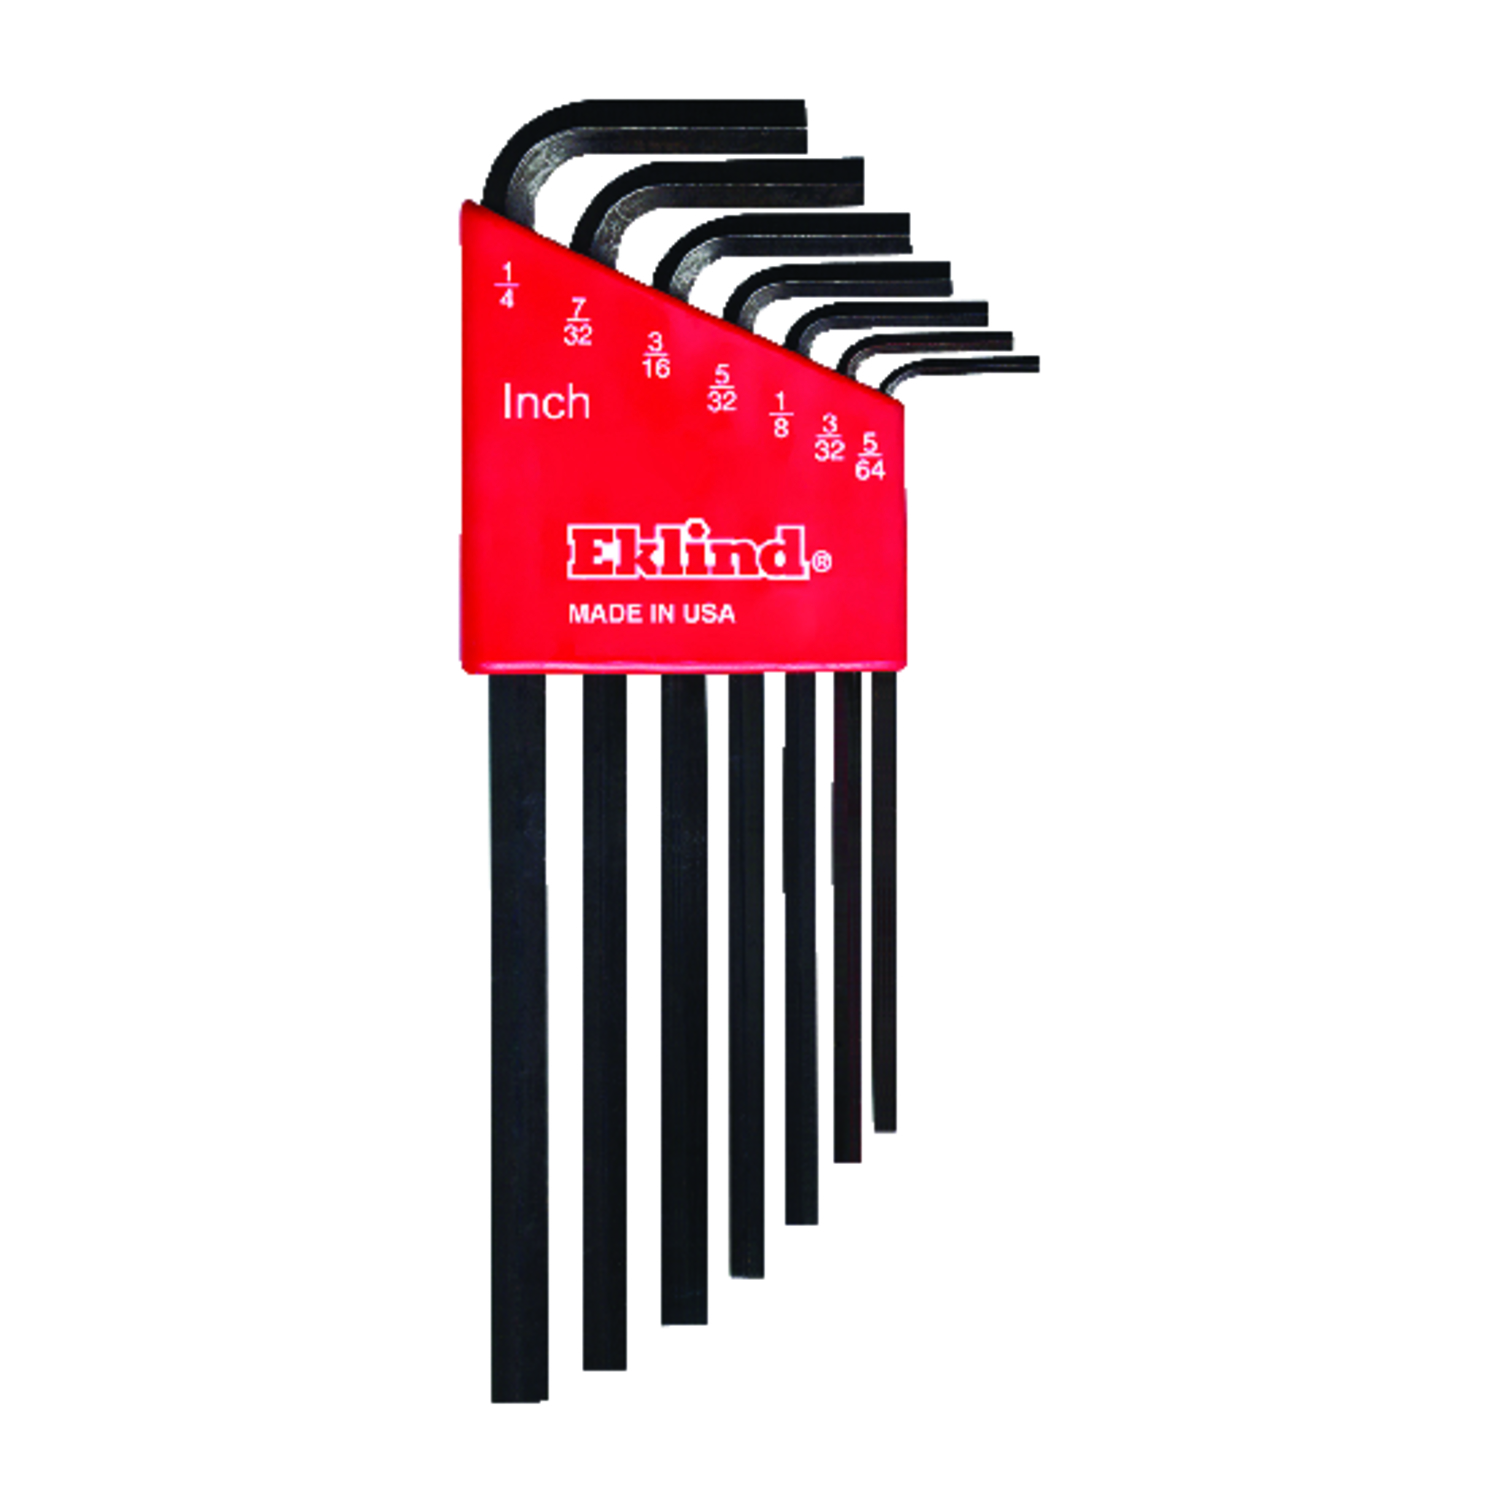 Eklind Tool  5/64 to 1/4  SAE  Long Arm  Hex Key Set  7 pc. Multi-Size in.